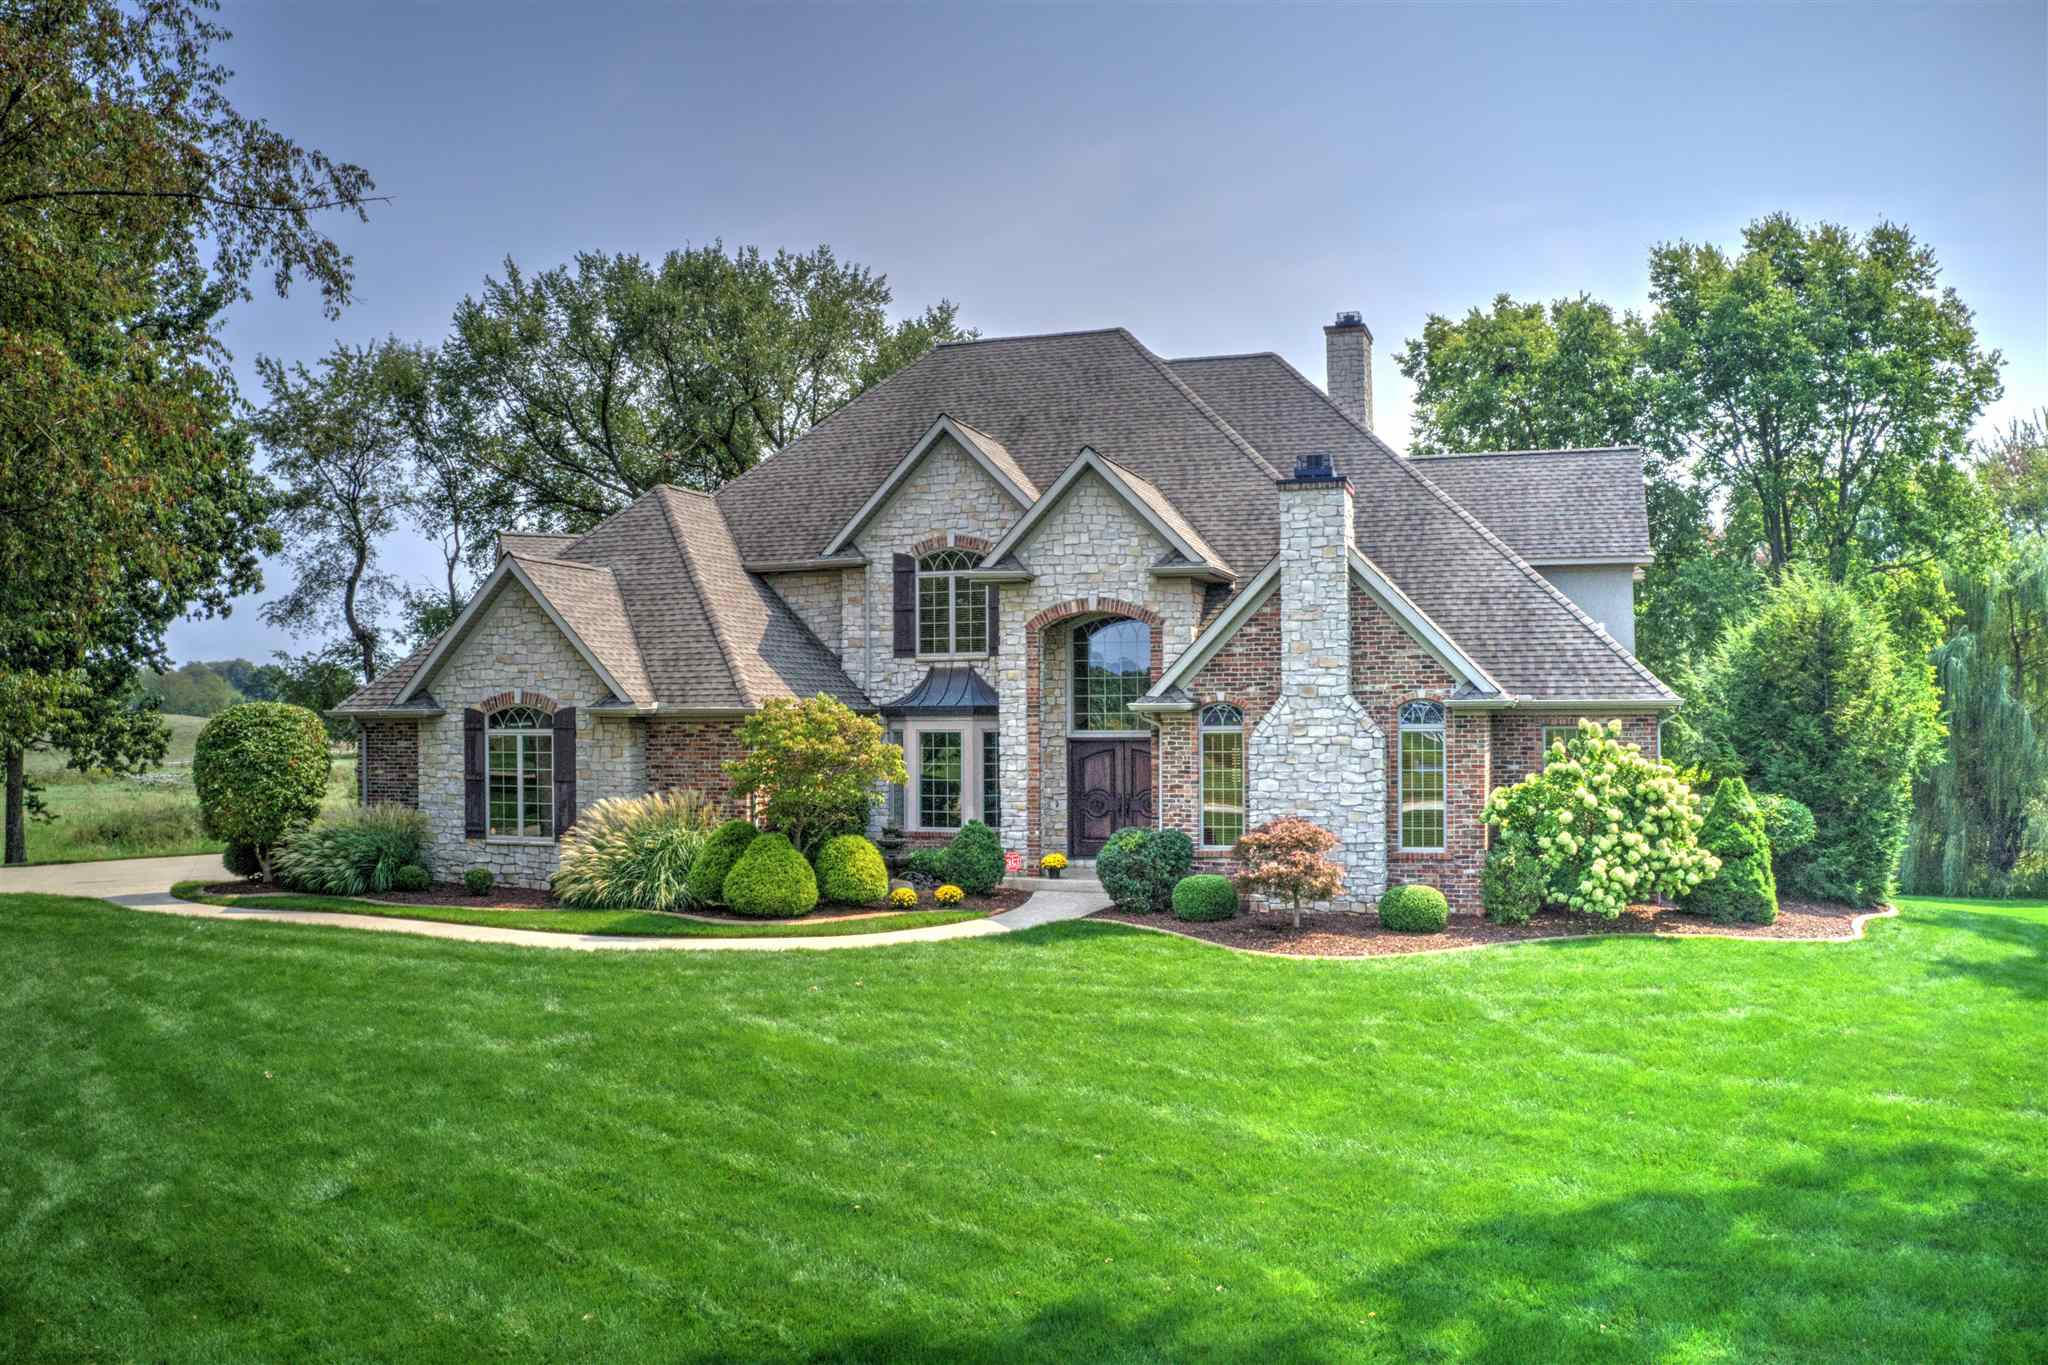 11325 Fishers Pond, Middlebury, IN 46540